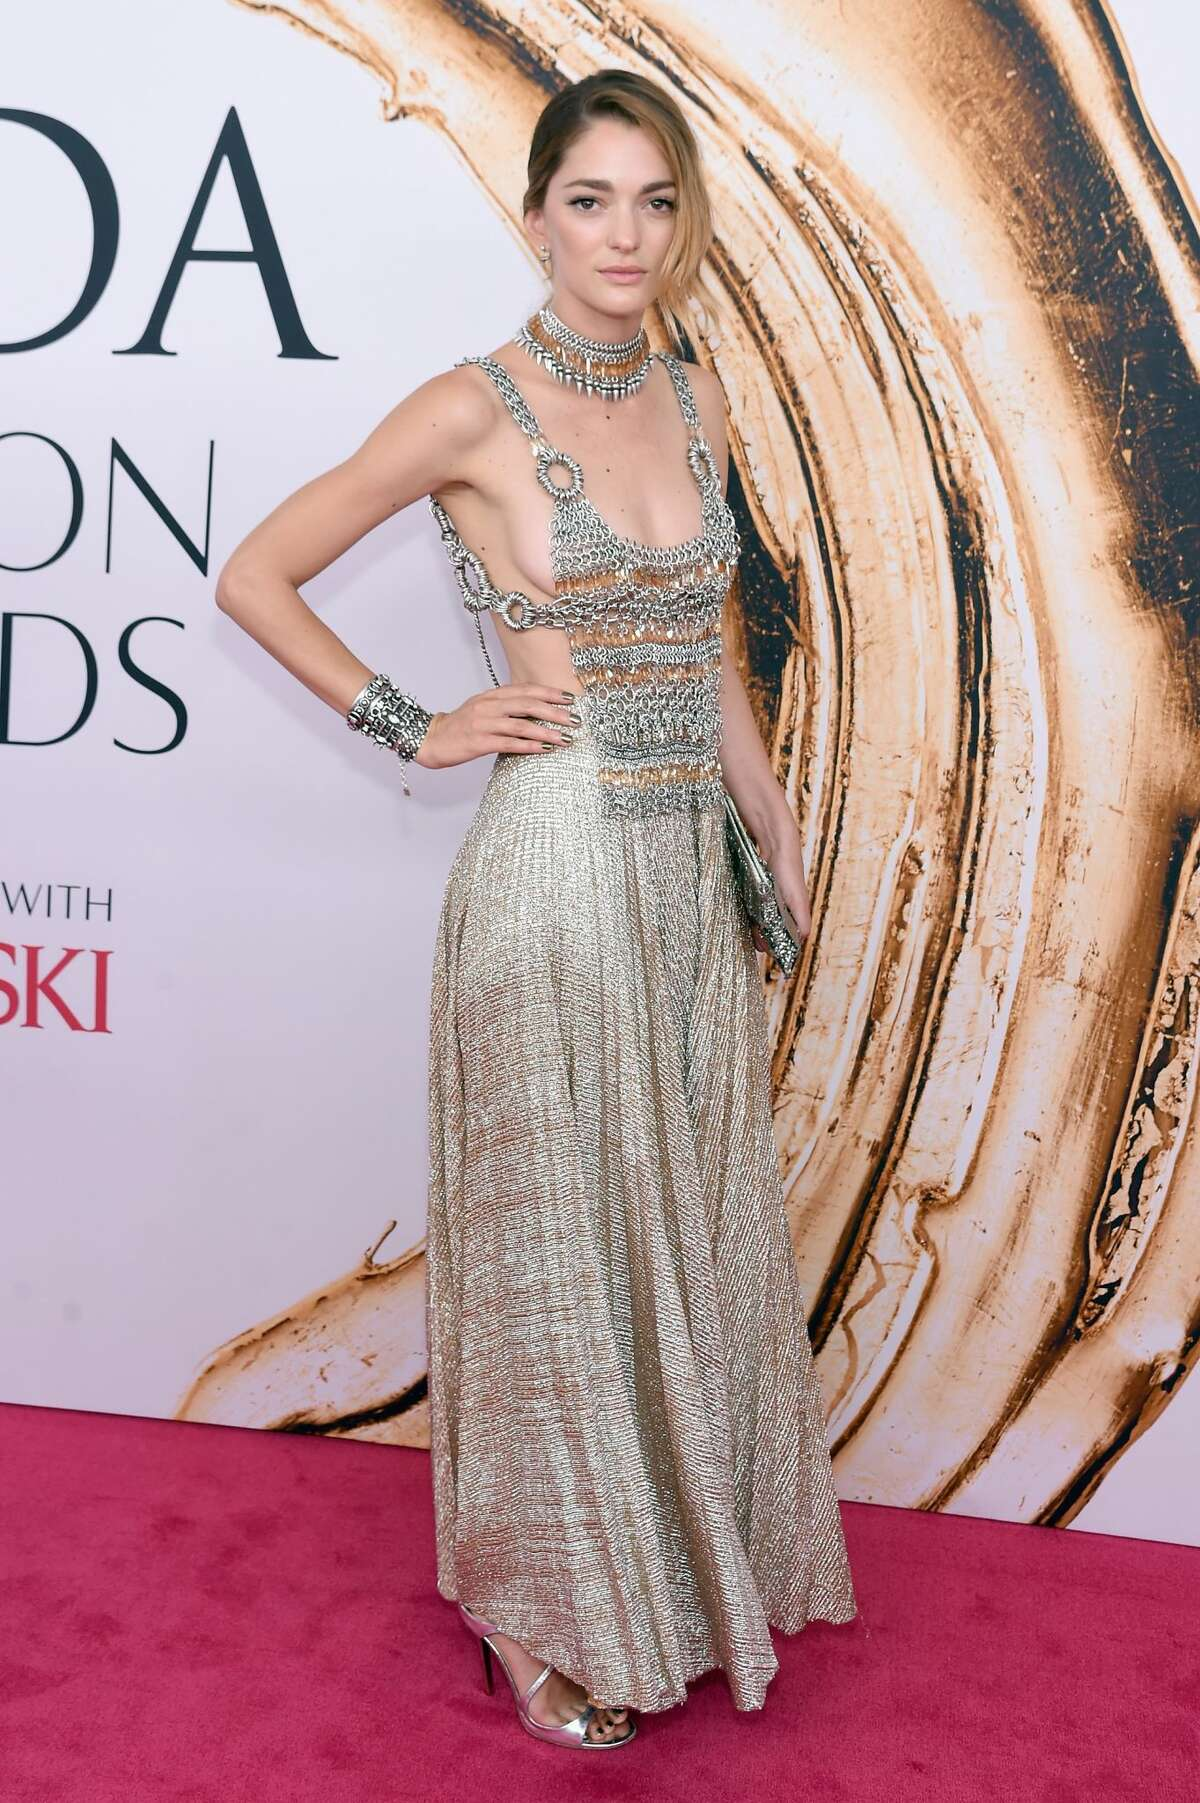 NEW YORK, NY - JUNE 06: Sofia Sanchez de Betak attends the 2016 CFDA Fashion Awards at the Hammerstein Ballroom on June 6, 2016 in New York City. (Photo by Jamie McCarthy/Getty Images)